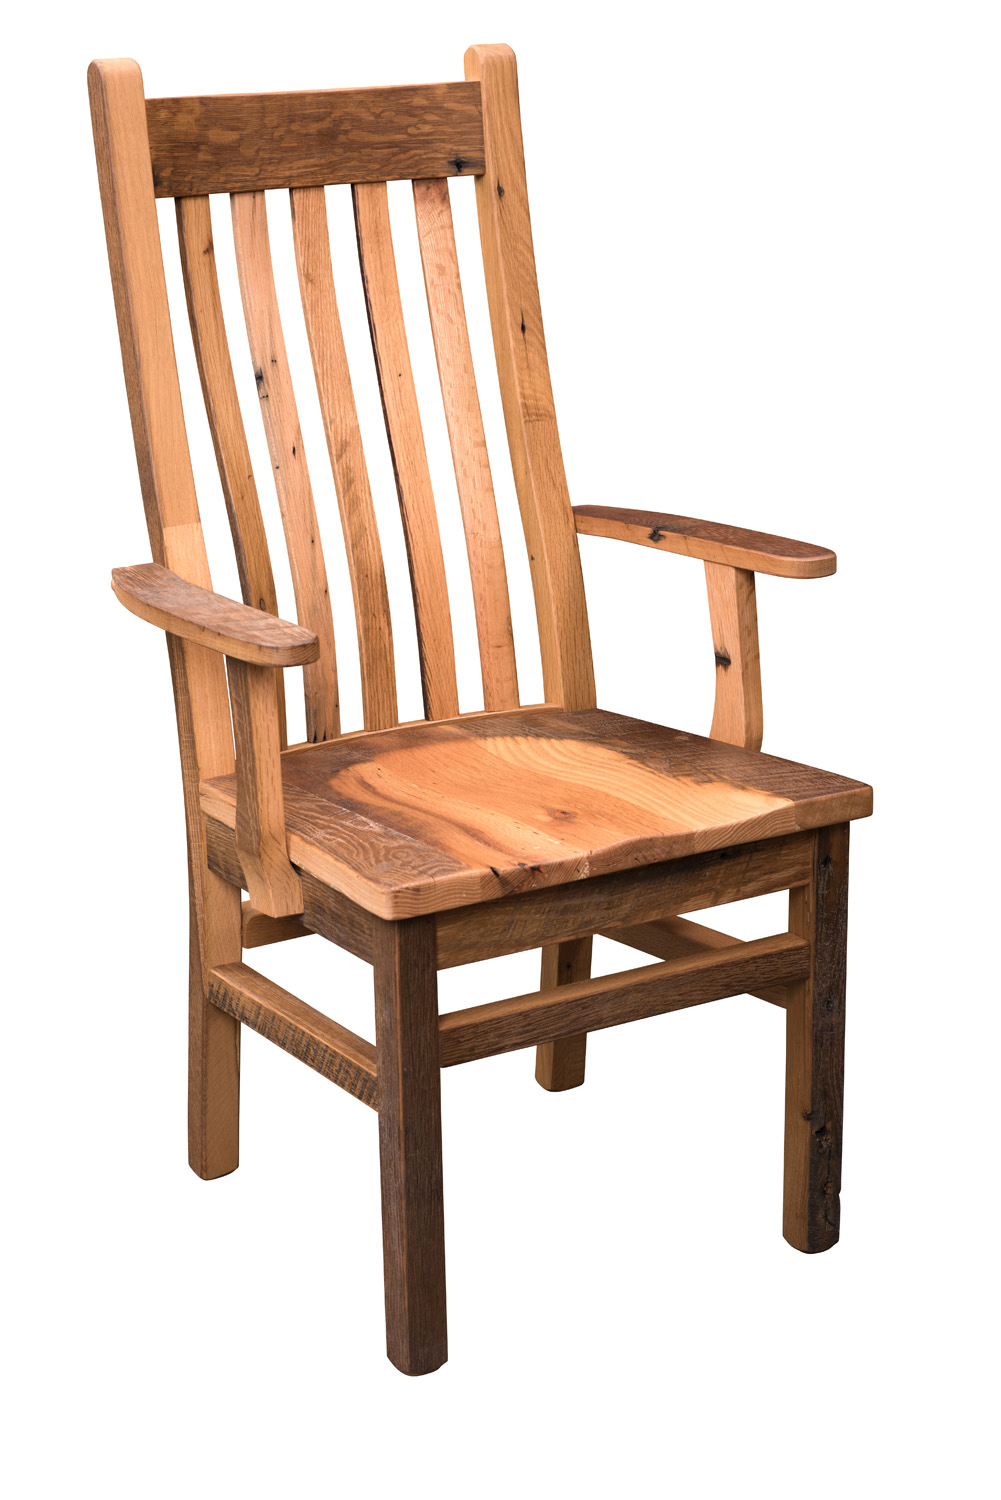 Barn Wood Mission Chair Product